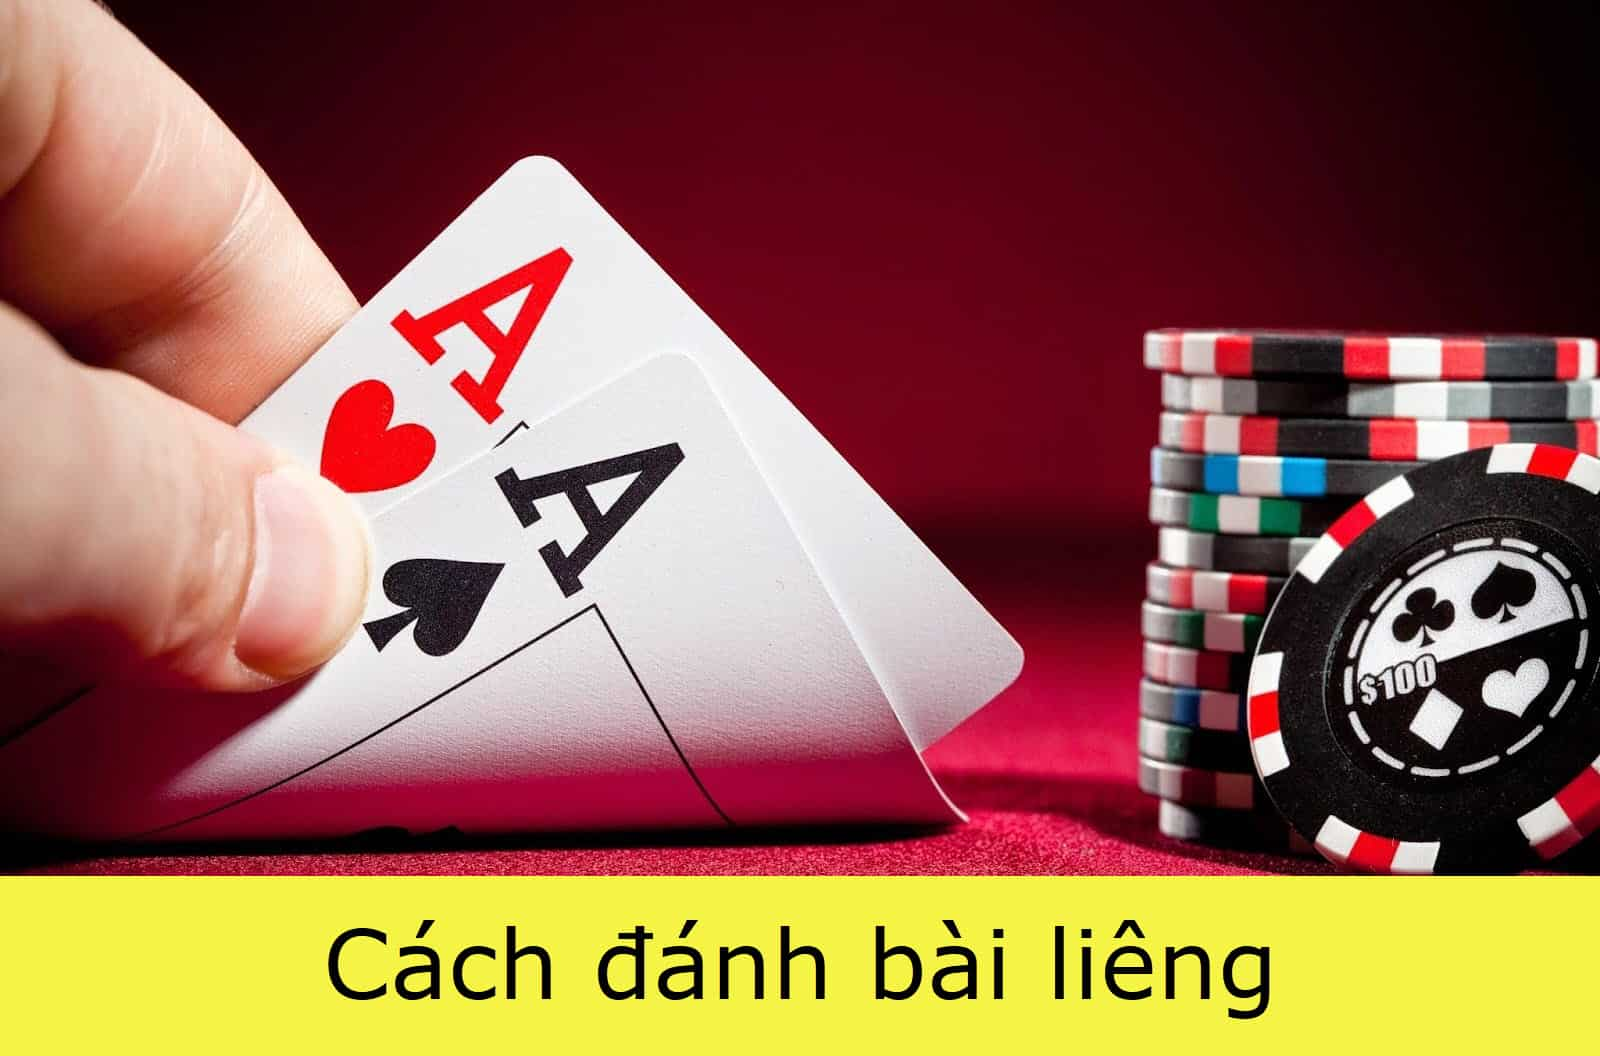 Basic Rules & How to Play Online for Beginners